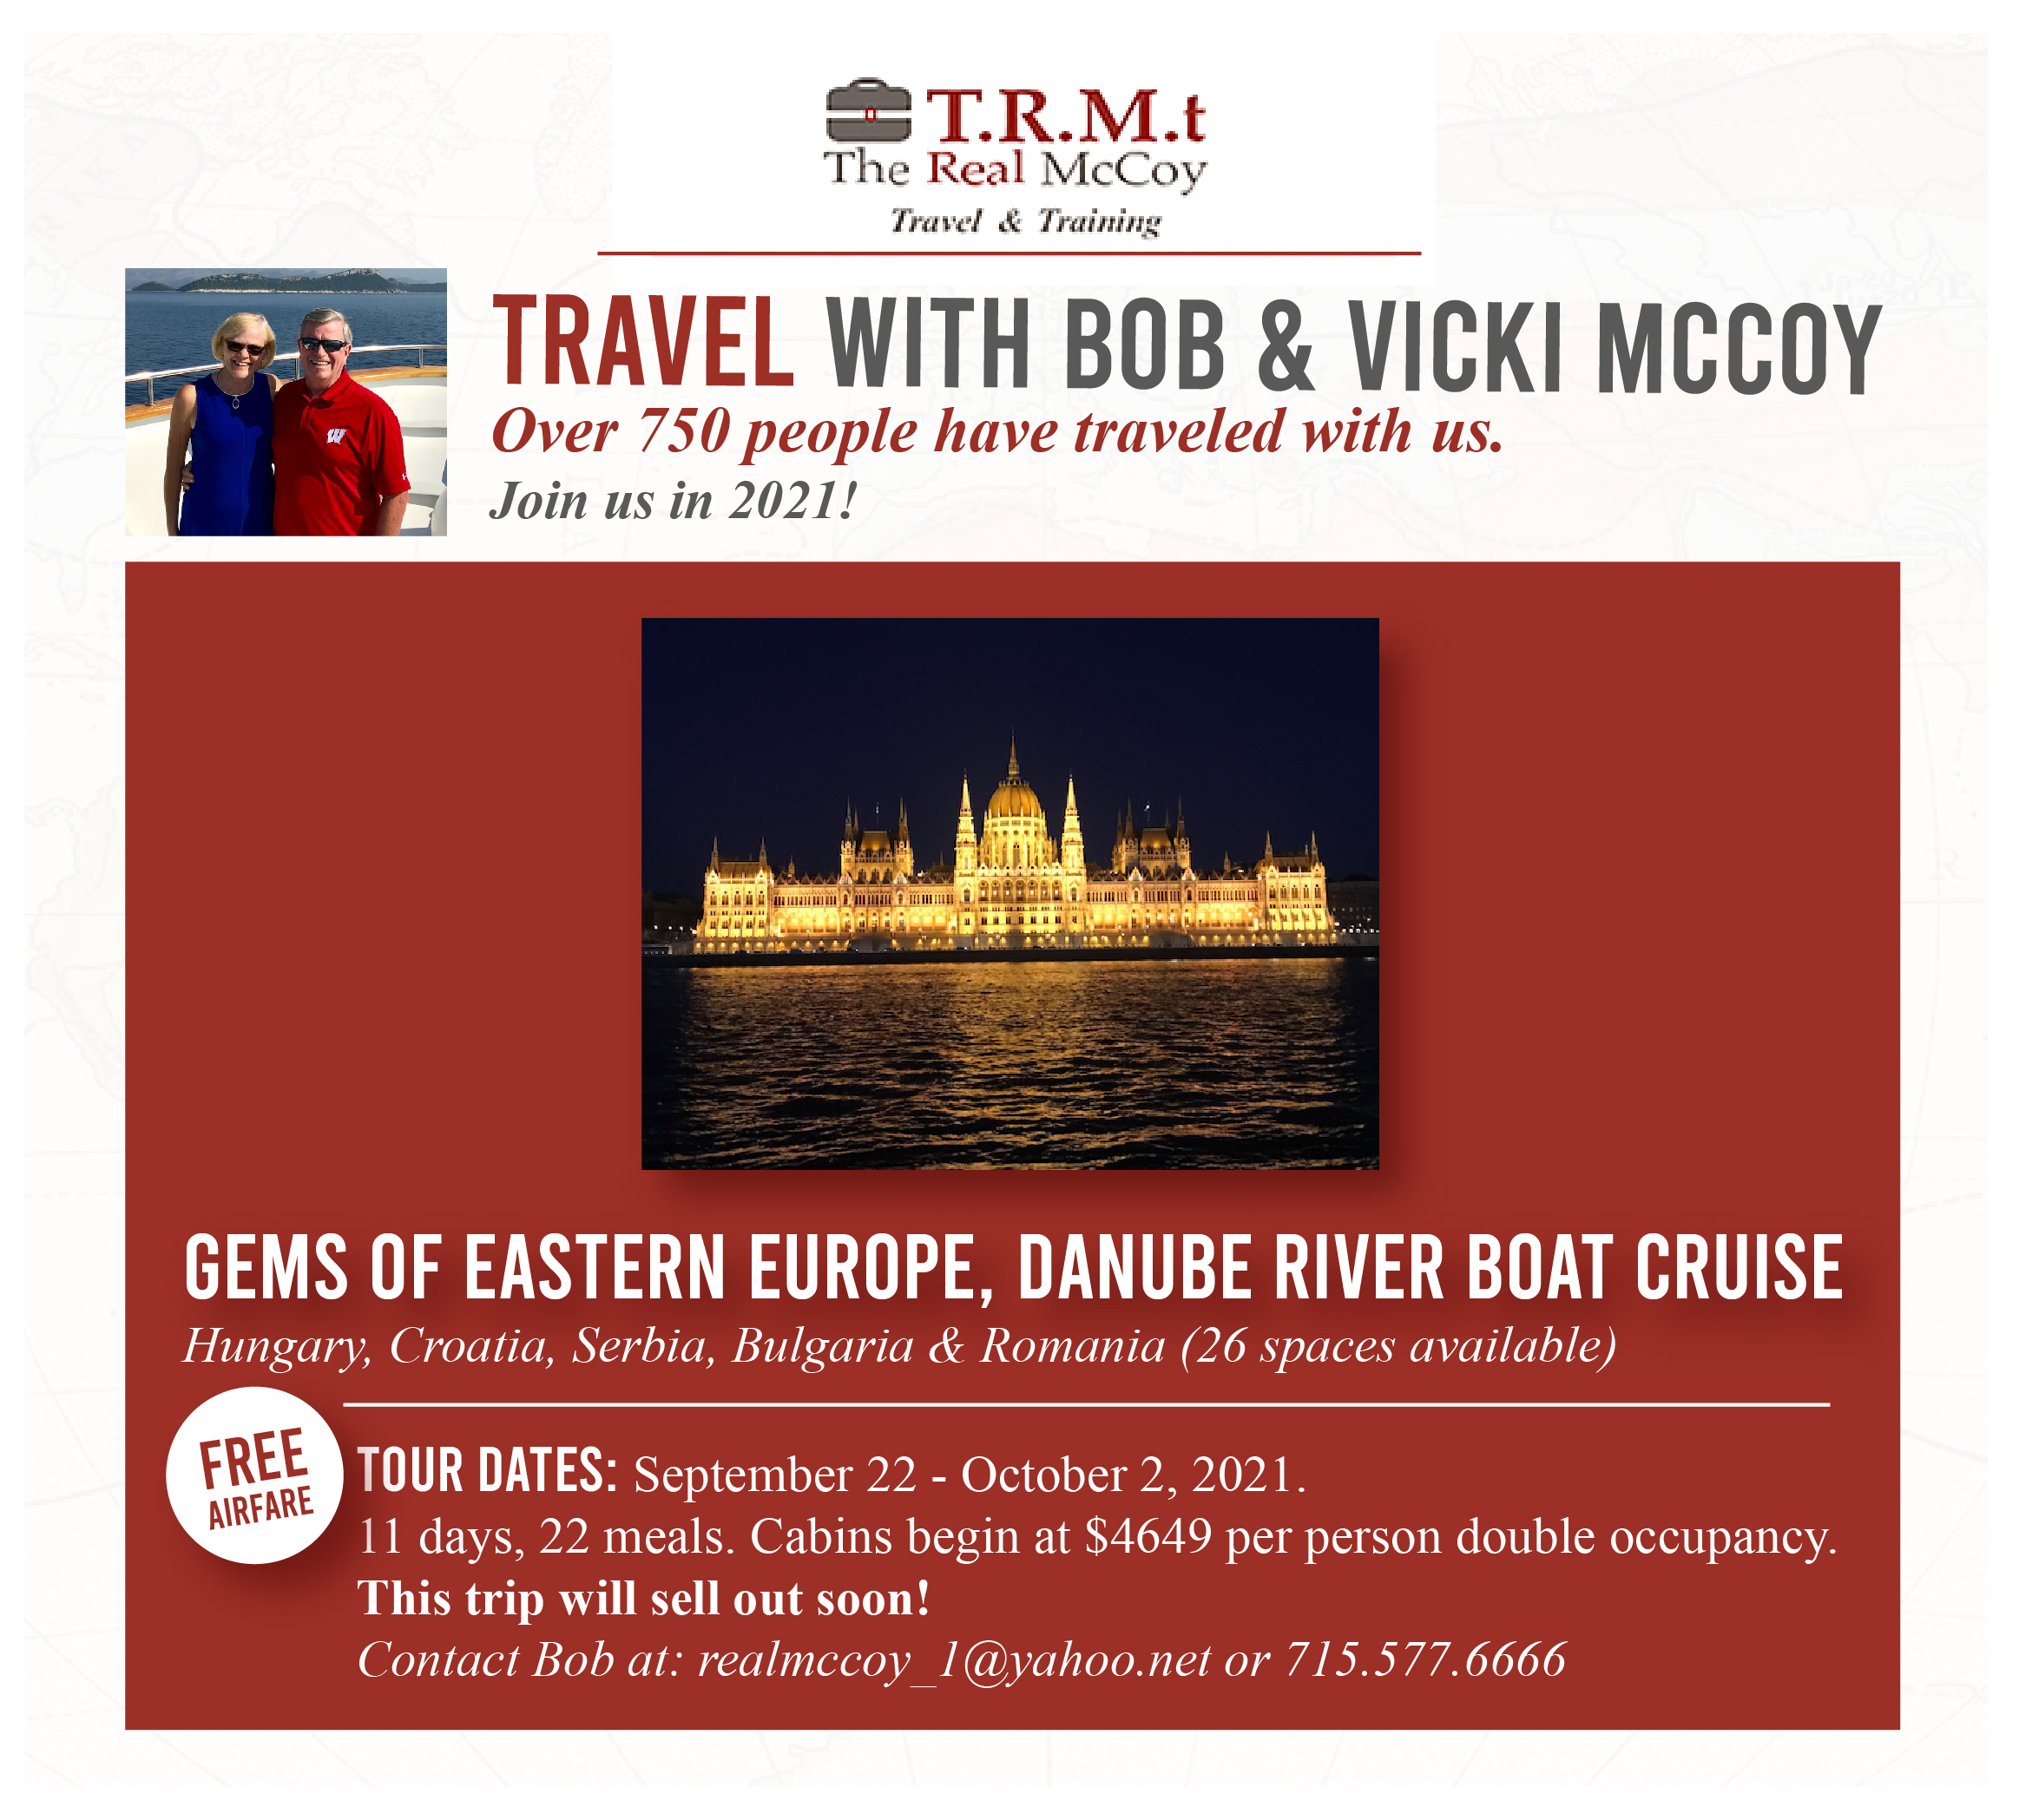 The Real McCoy Travel